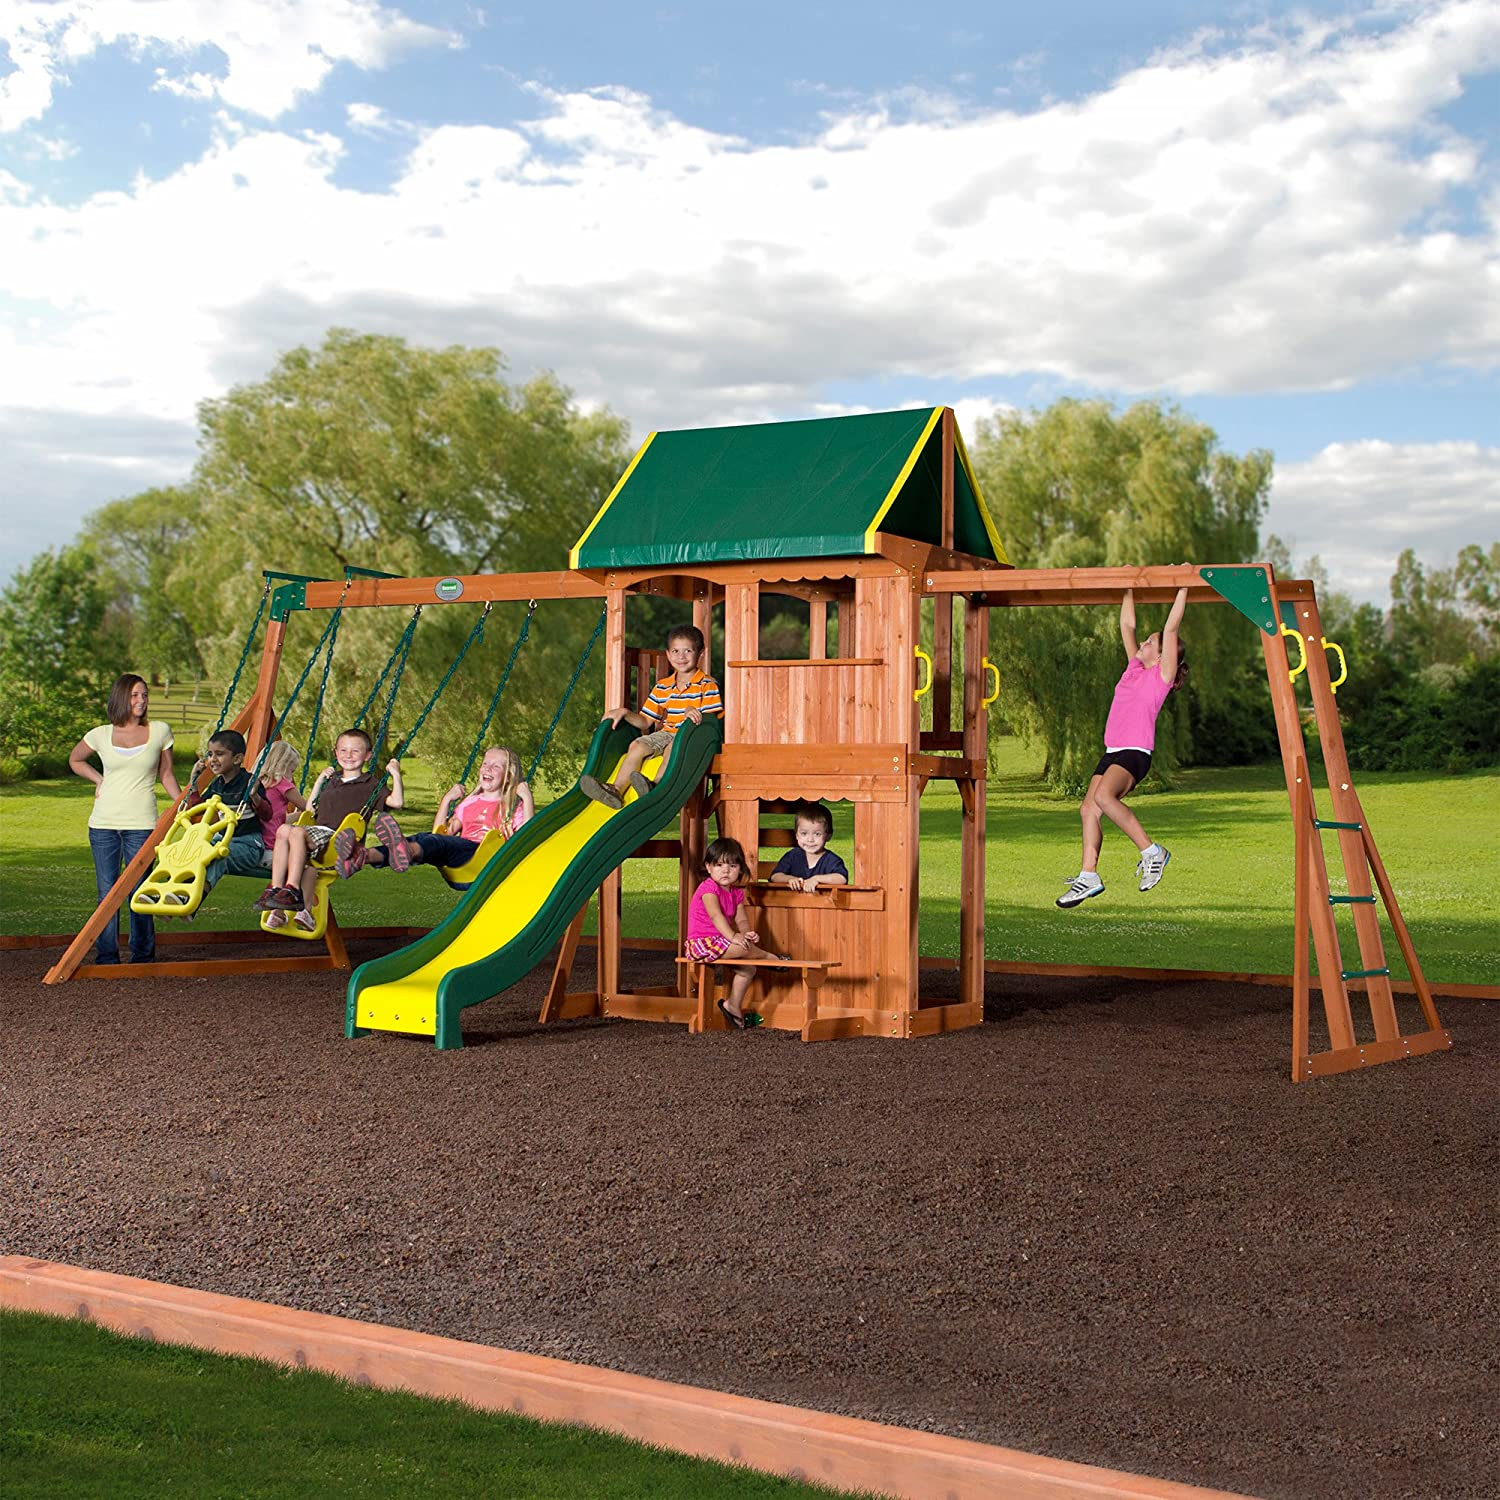 Outdoor Cedar Wooden Swing Set, Kids Play Center, Slide